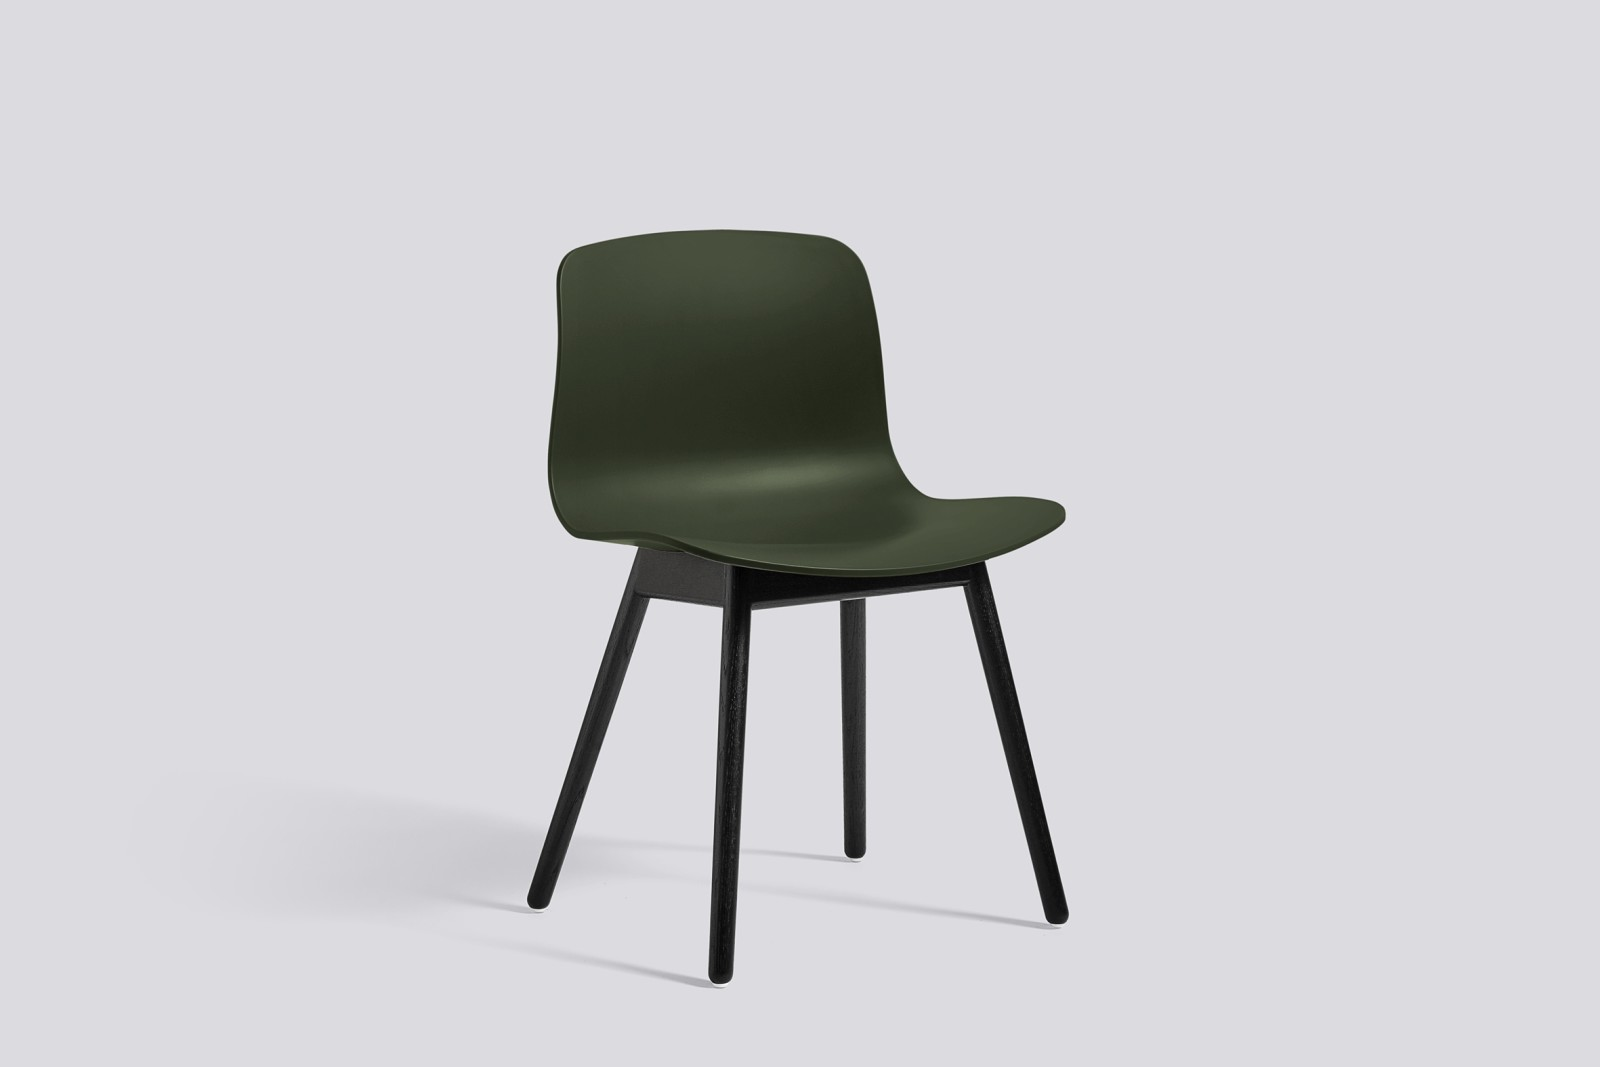 About A Chair AAC12 Green Seat and Black Stained Base